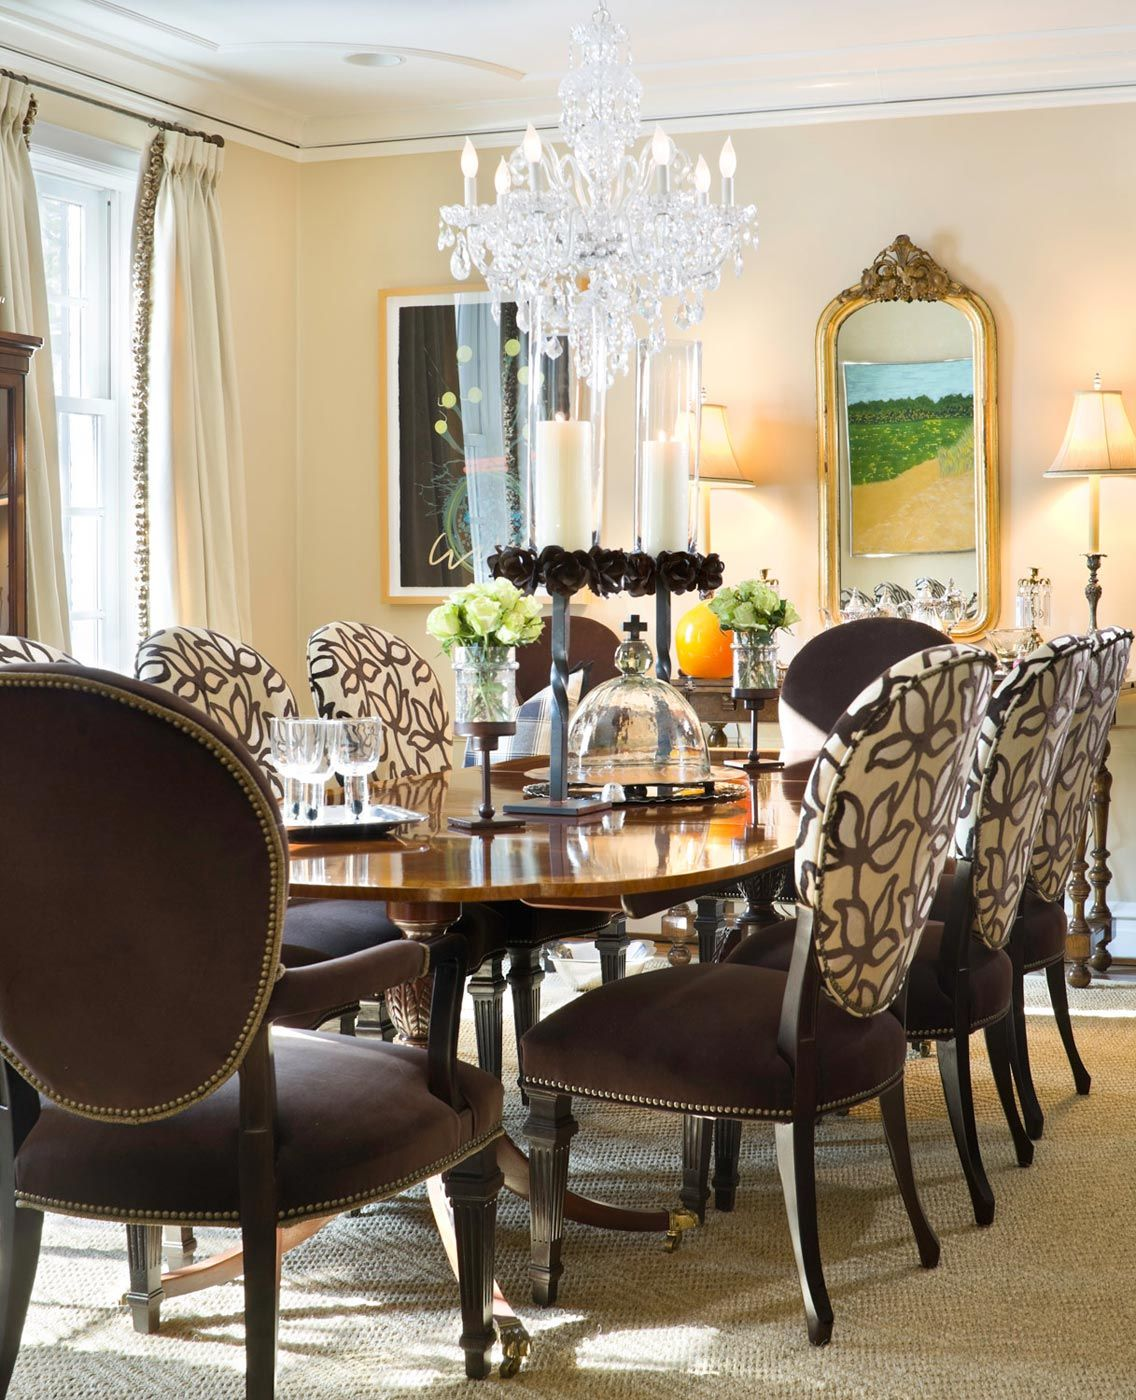 Good job with the fabric combos on chairs  tribout interior design also rh pinterest